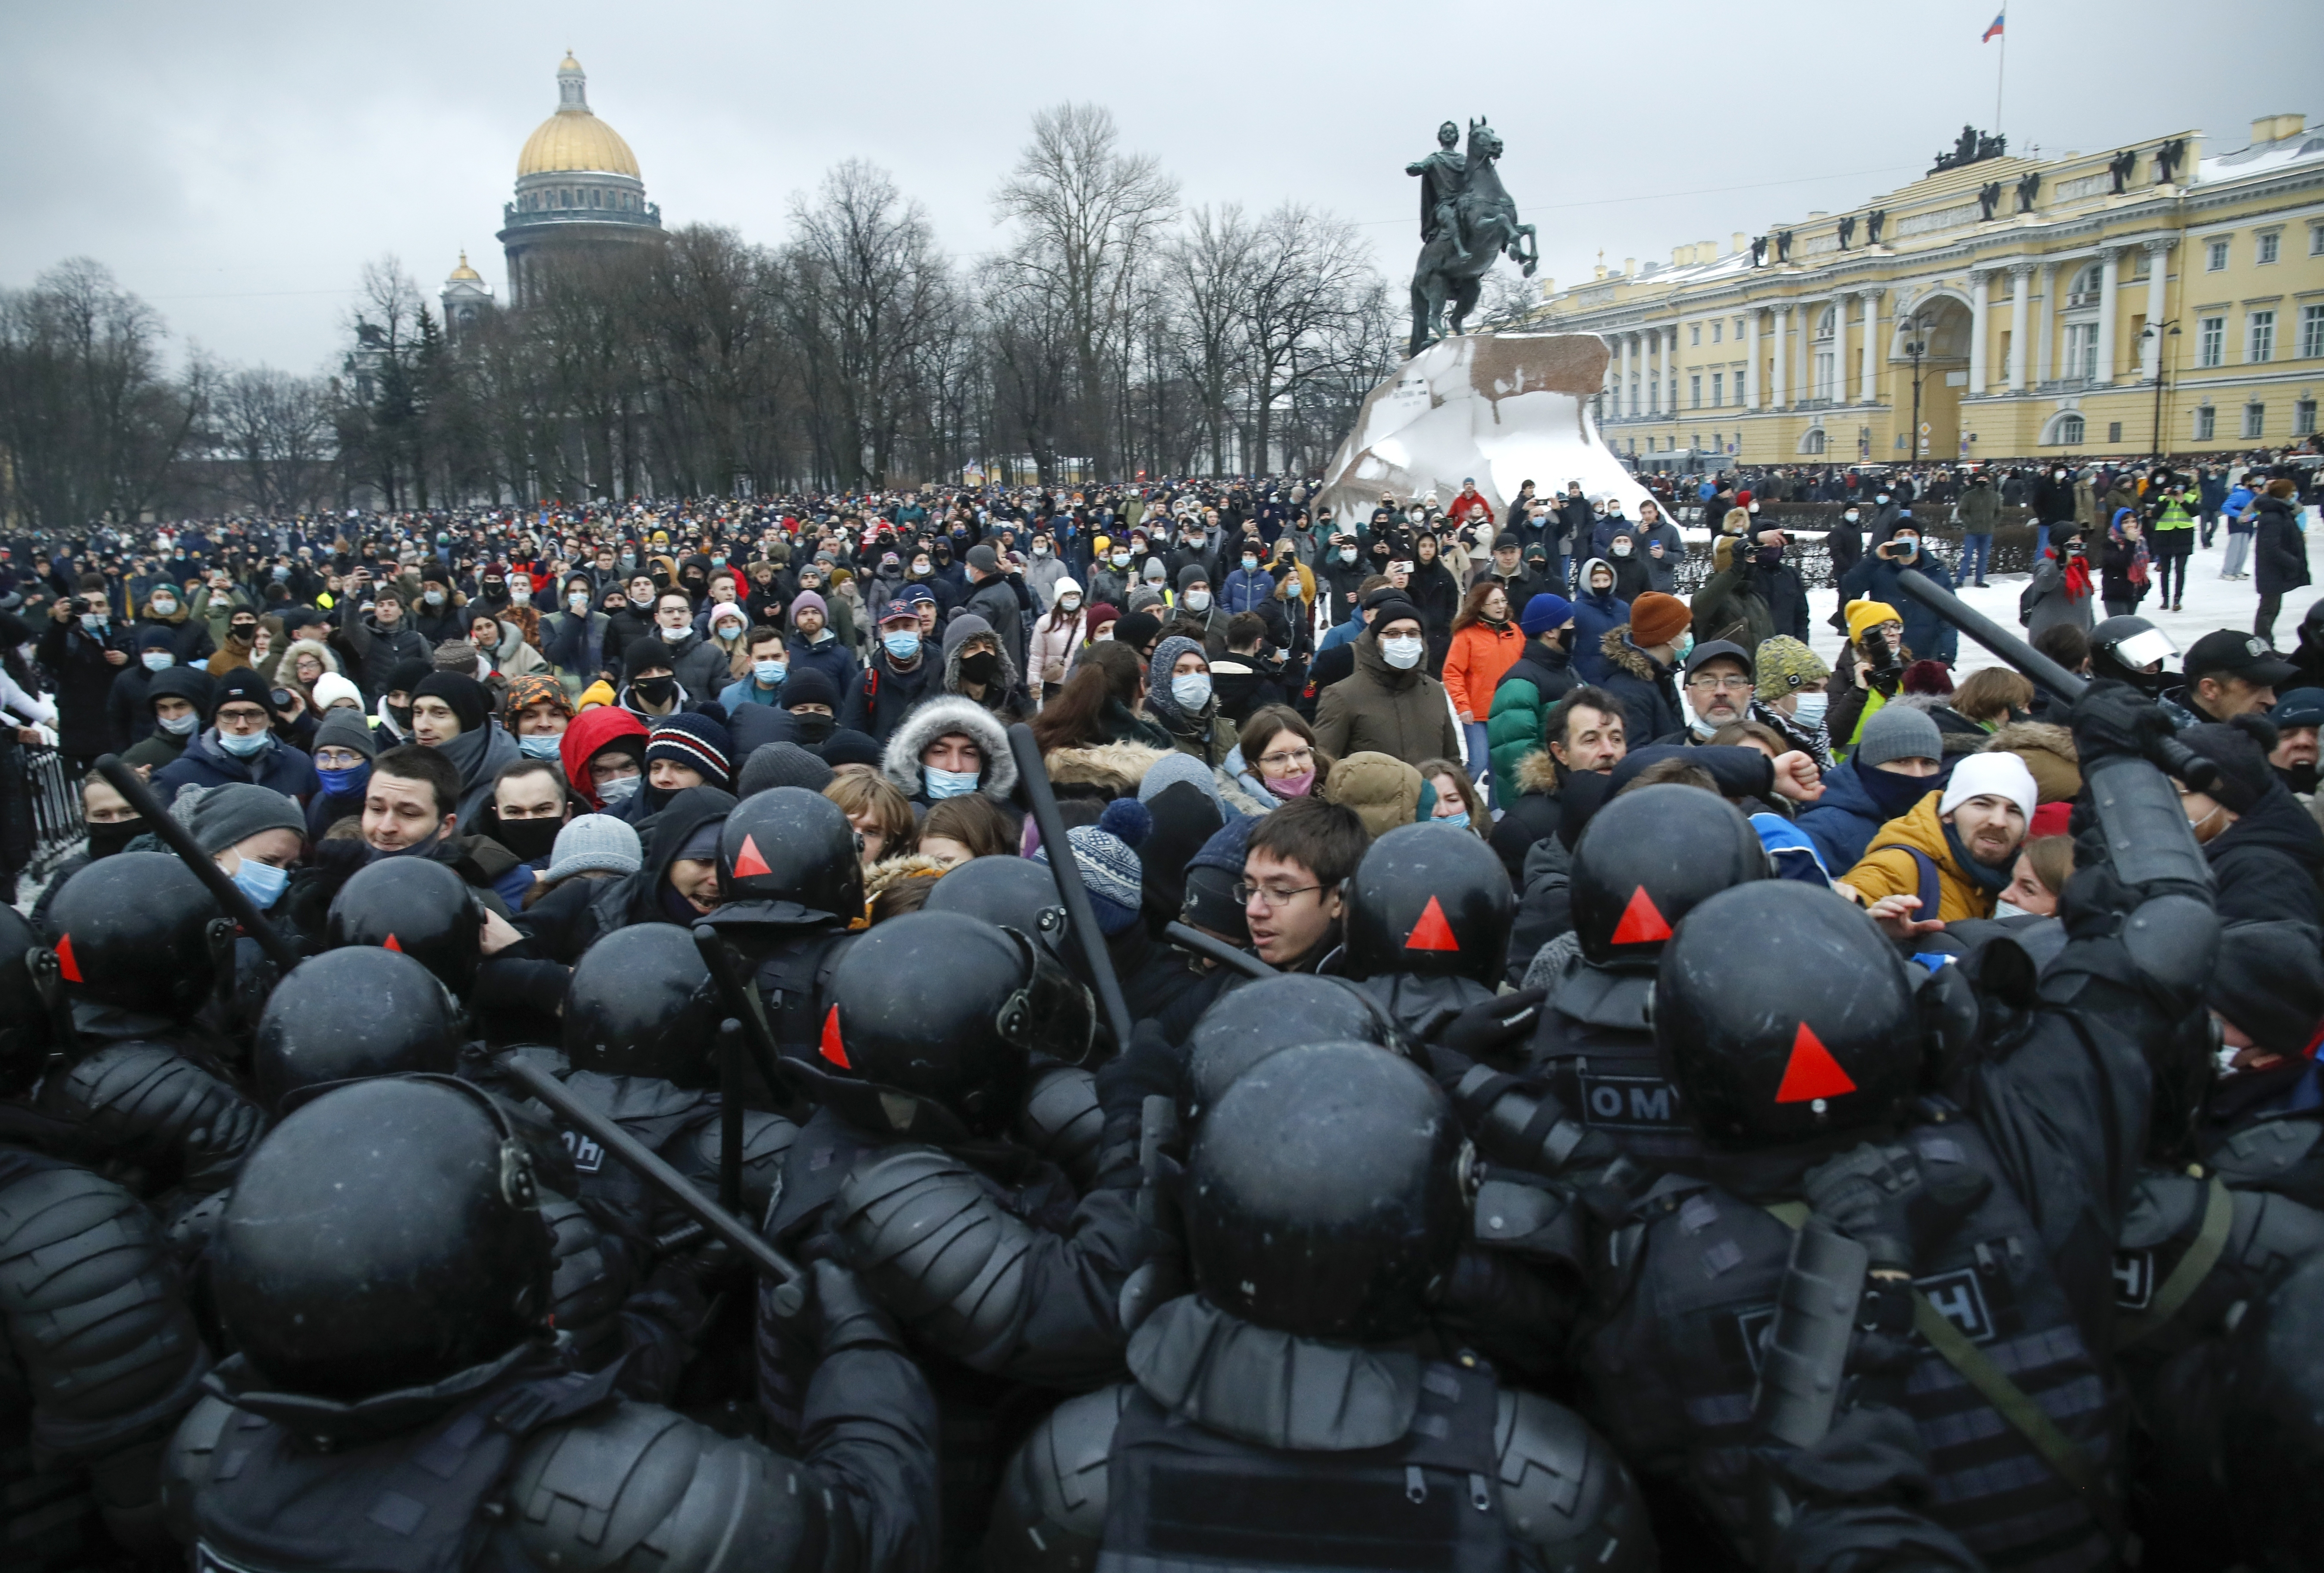 People clash with police during a protest against the jailing of opposition leader Alexei Navalny in St.Petersburg, Russia, Saturday, Jan. 23, 2021. Russian police on Saturday arrested hundreds of protesters who took to the streets in temperatures as low as minus-50 C (minus-58 F) to demand the release of Alexei Navalny, the country's top opposition figure. A Navalny, President Vladimir Putin's most prominent foe, was arrested on Jan. 17 when he returned to Moscow from Germany, where he had spent five months recovering from a severe nerve-agent poisoning that he blames on the Kremlin. Photo: AP